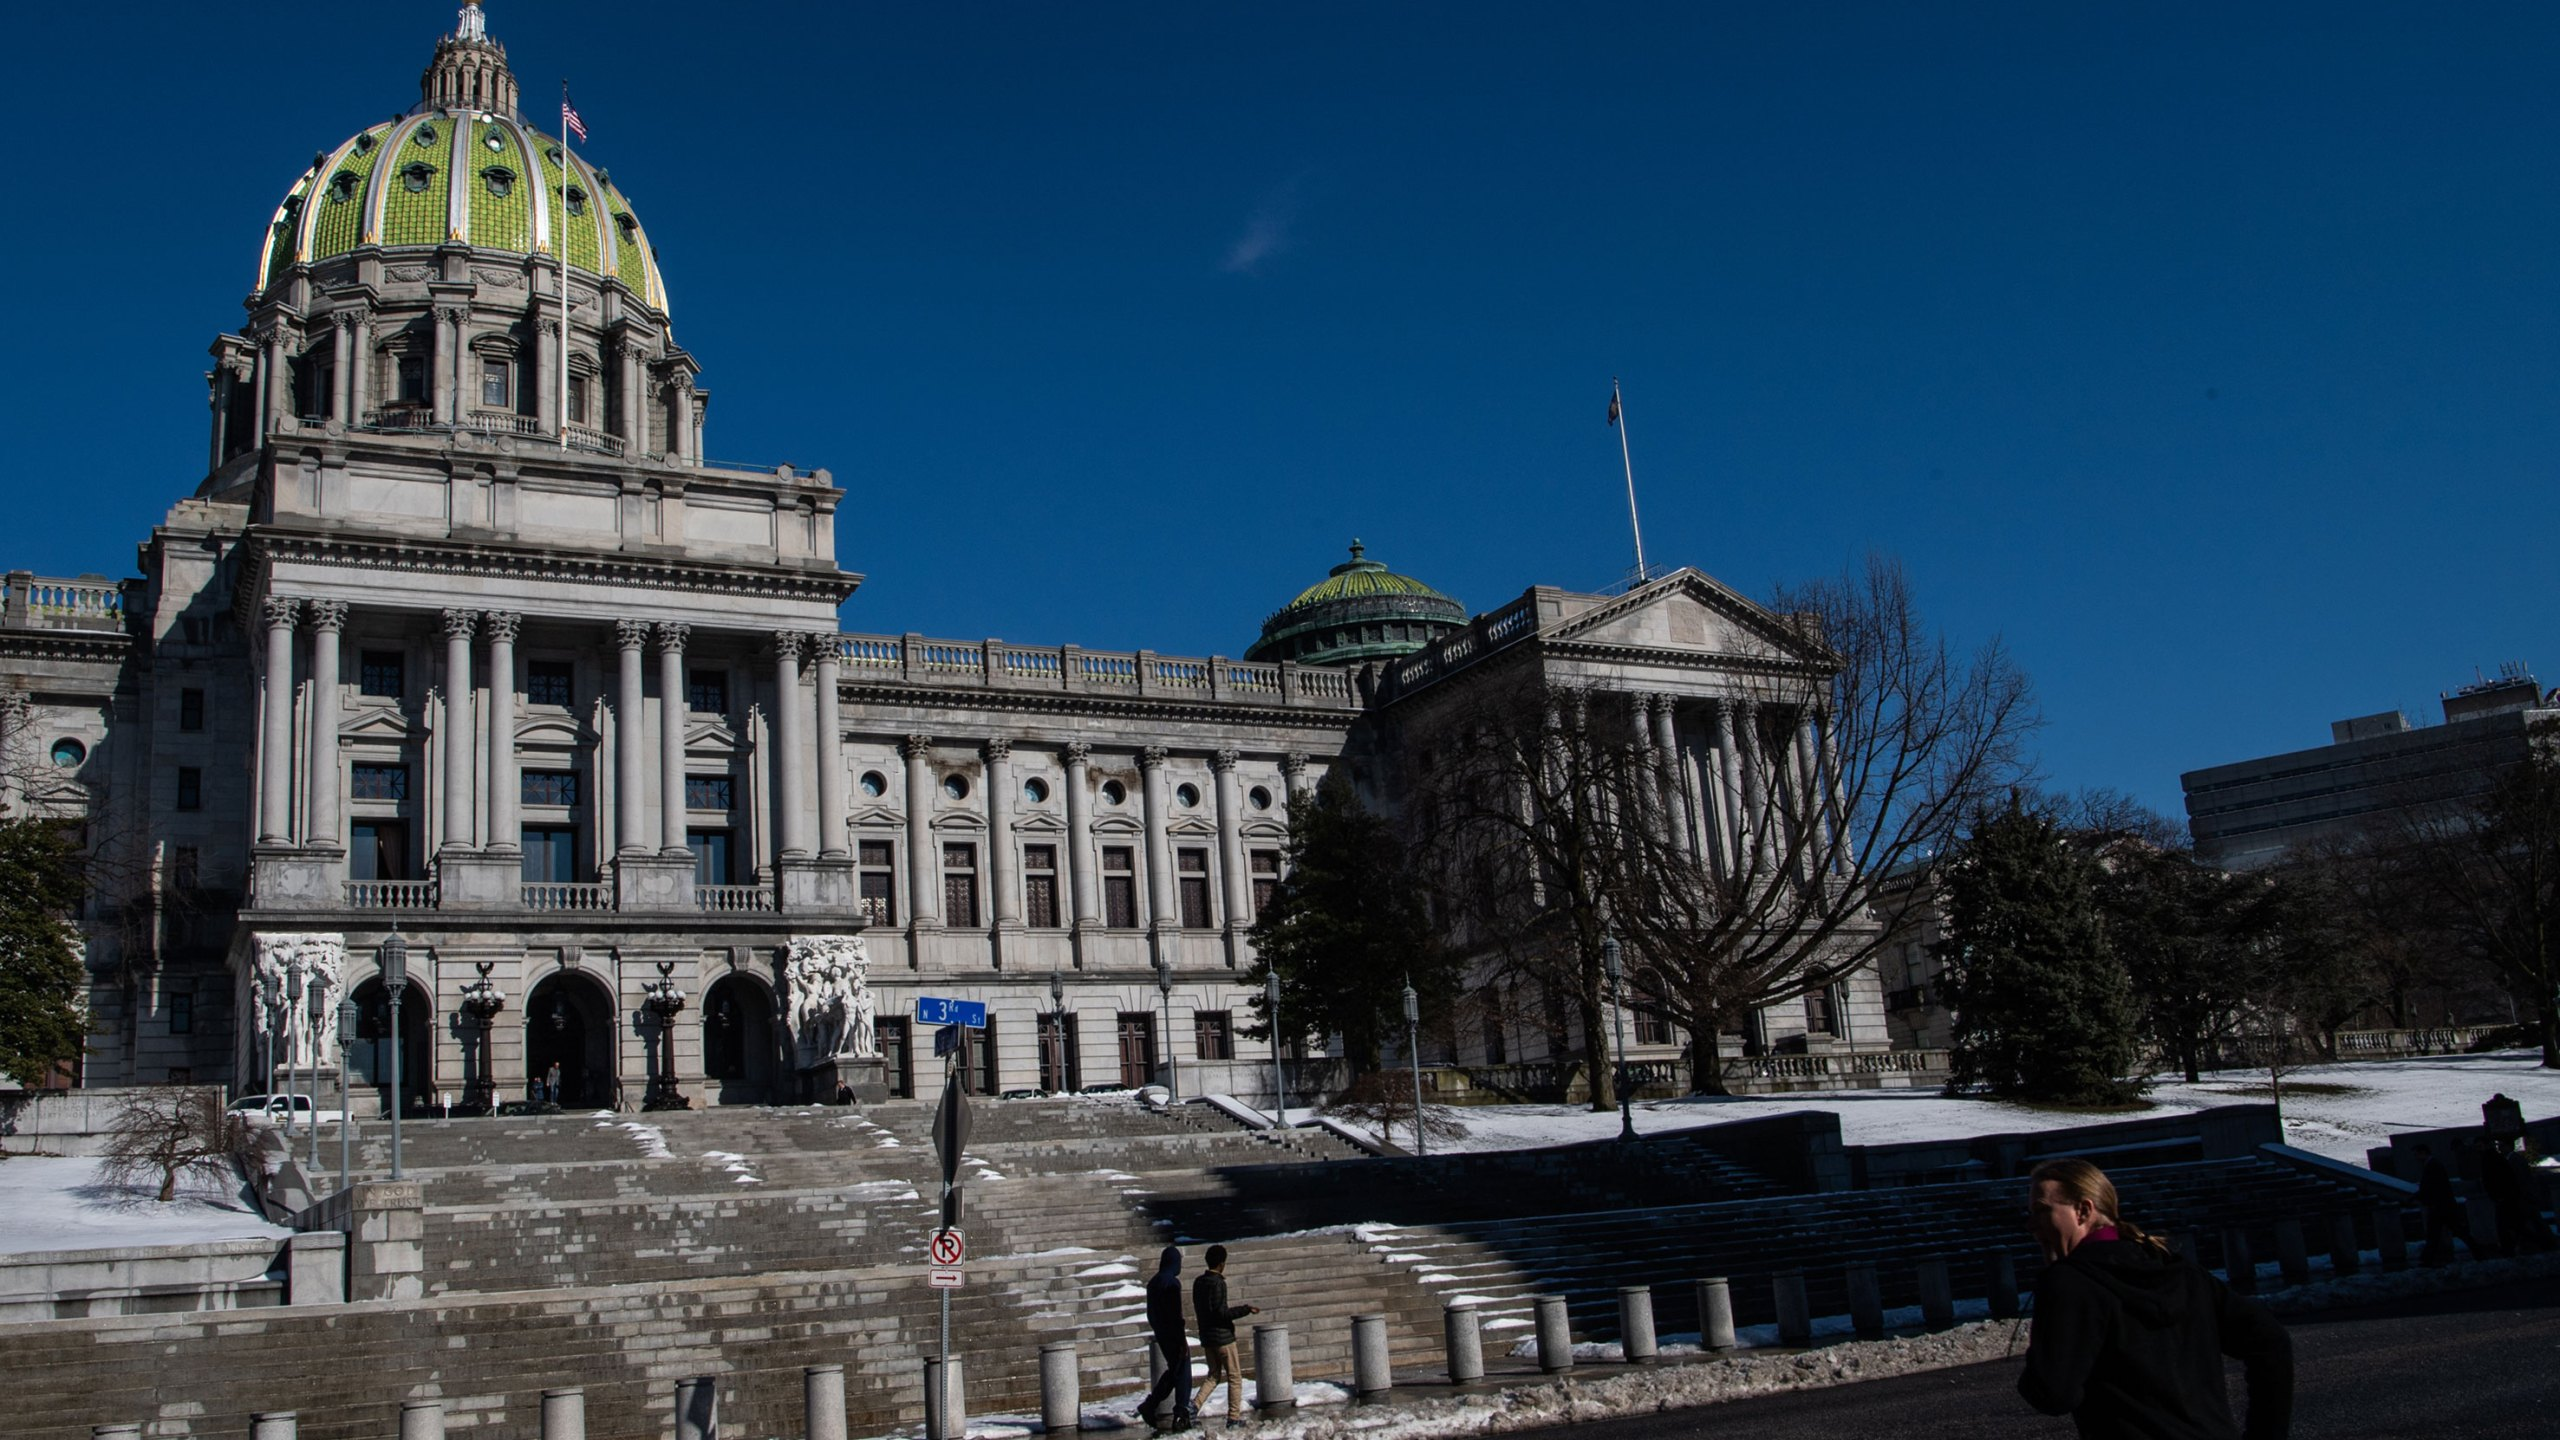 The Pennsylvania State Capitol is seen on Thursday, February 21, 2019, in Harrisburg, PA. (Salwan Georges/The Washington Post via Getty Images)